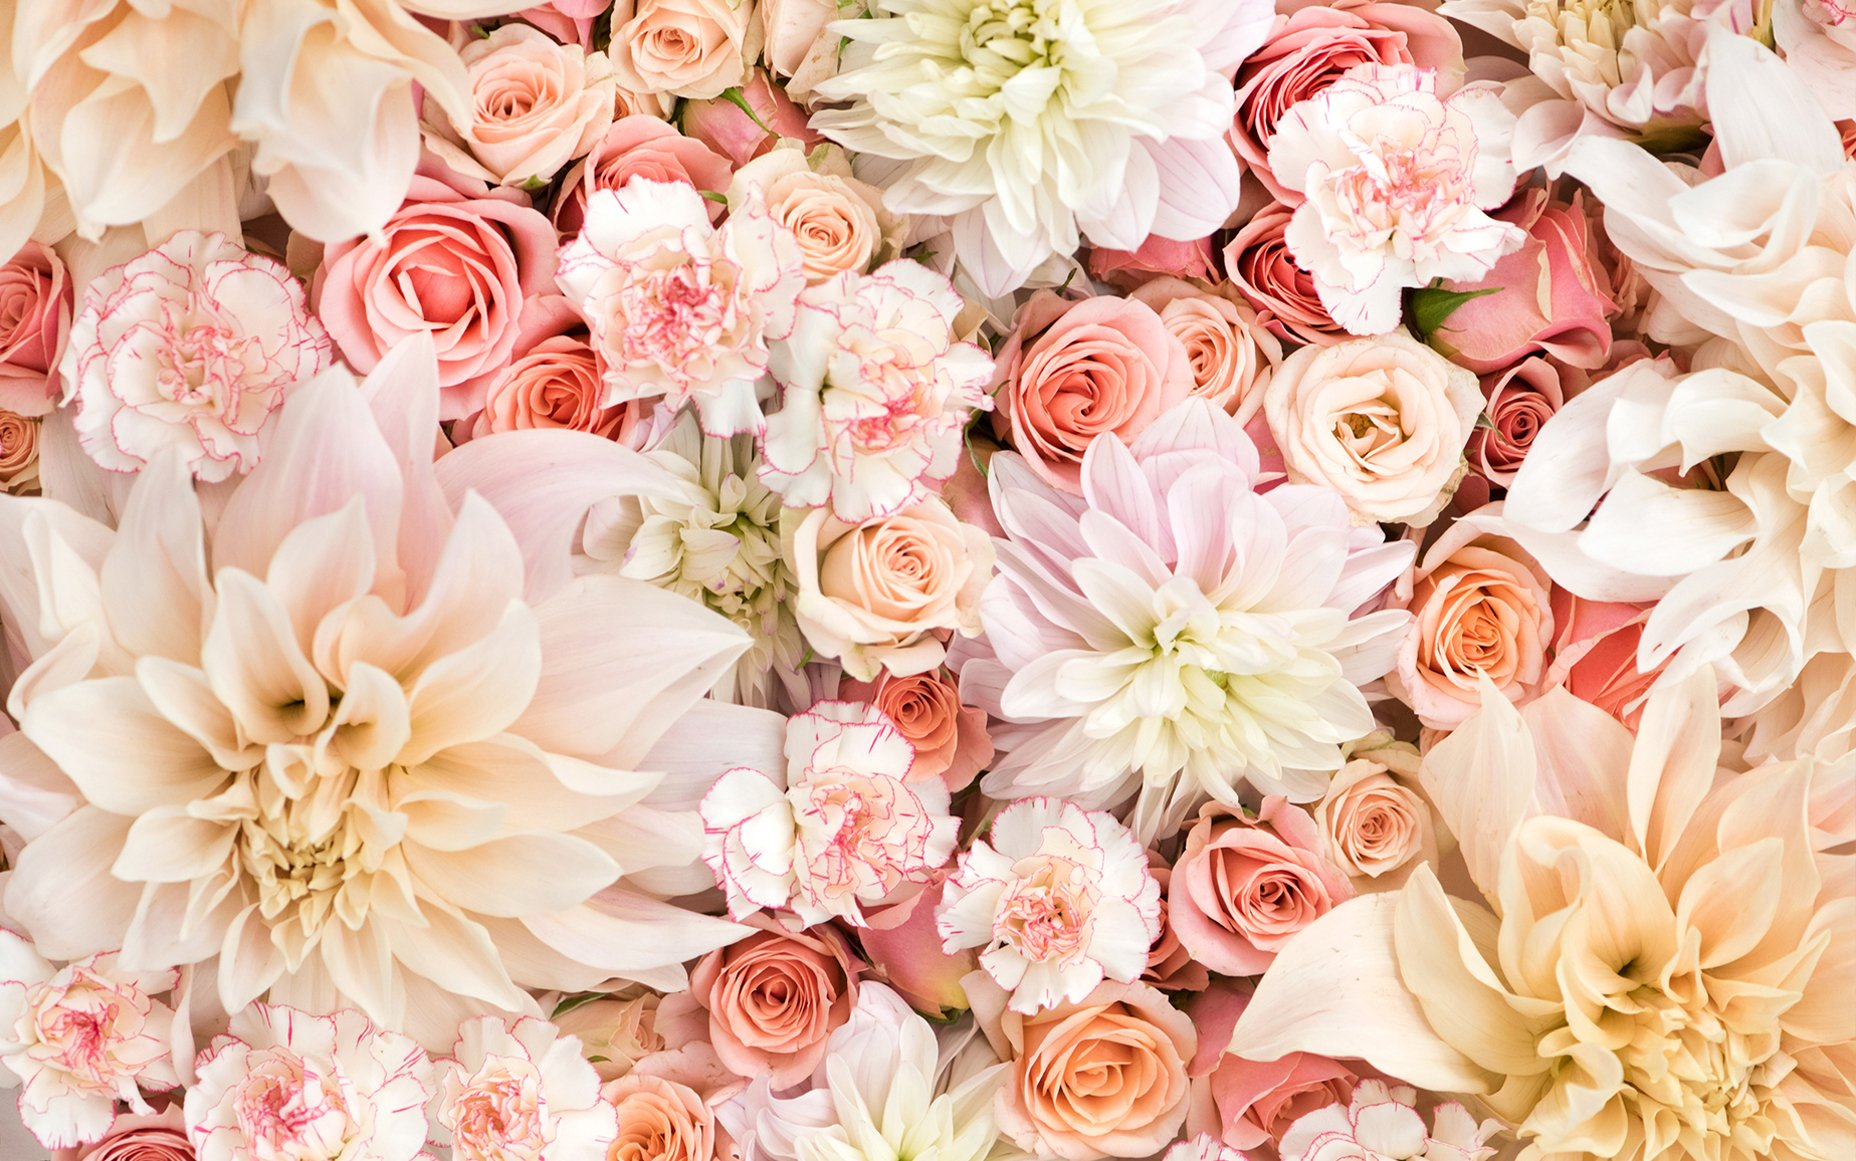 Flower pastel rose gold wallpaper iphone. Dahlias, Roses, and Carnations in Pastels Wallpaper and ...